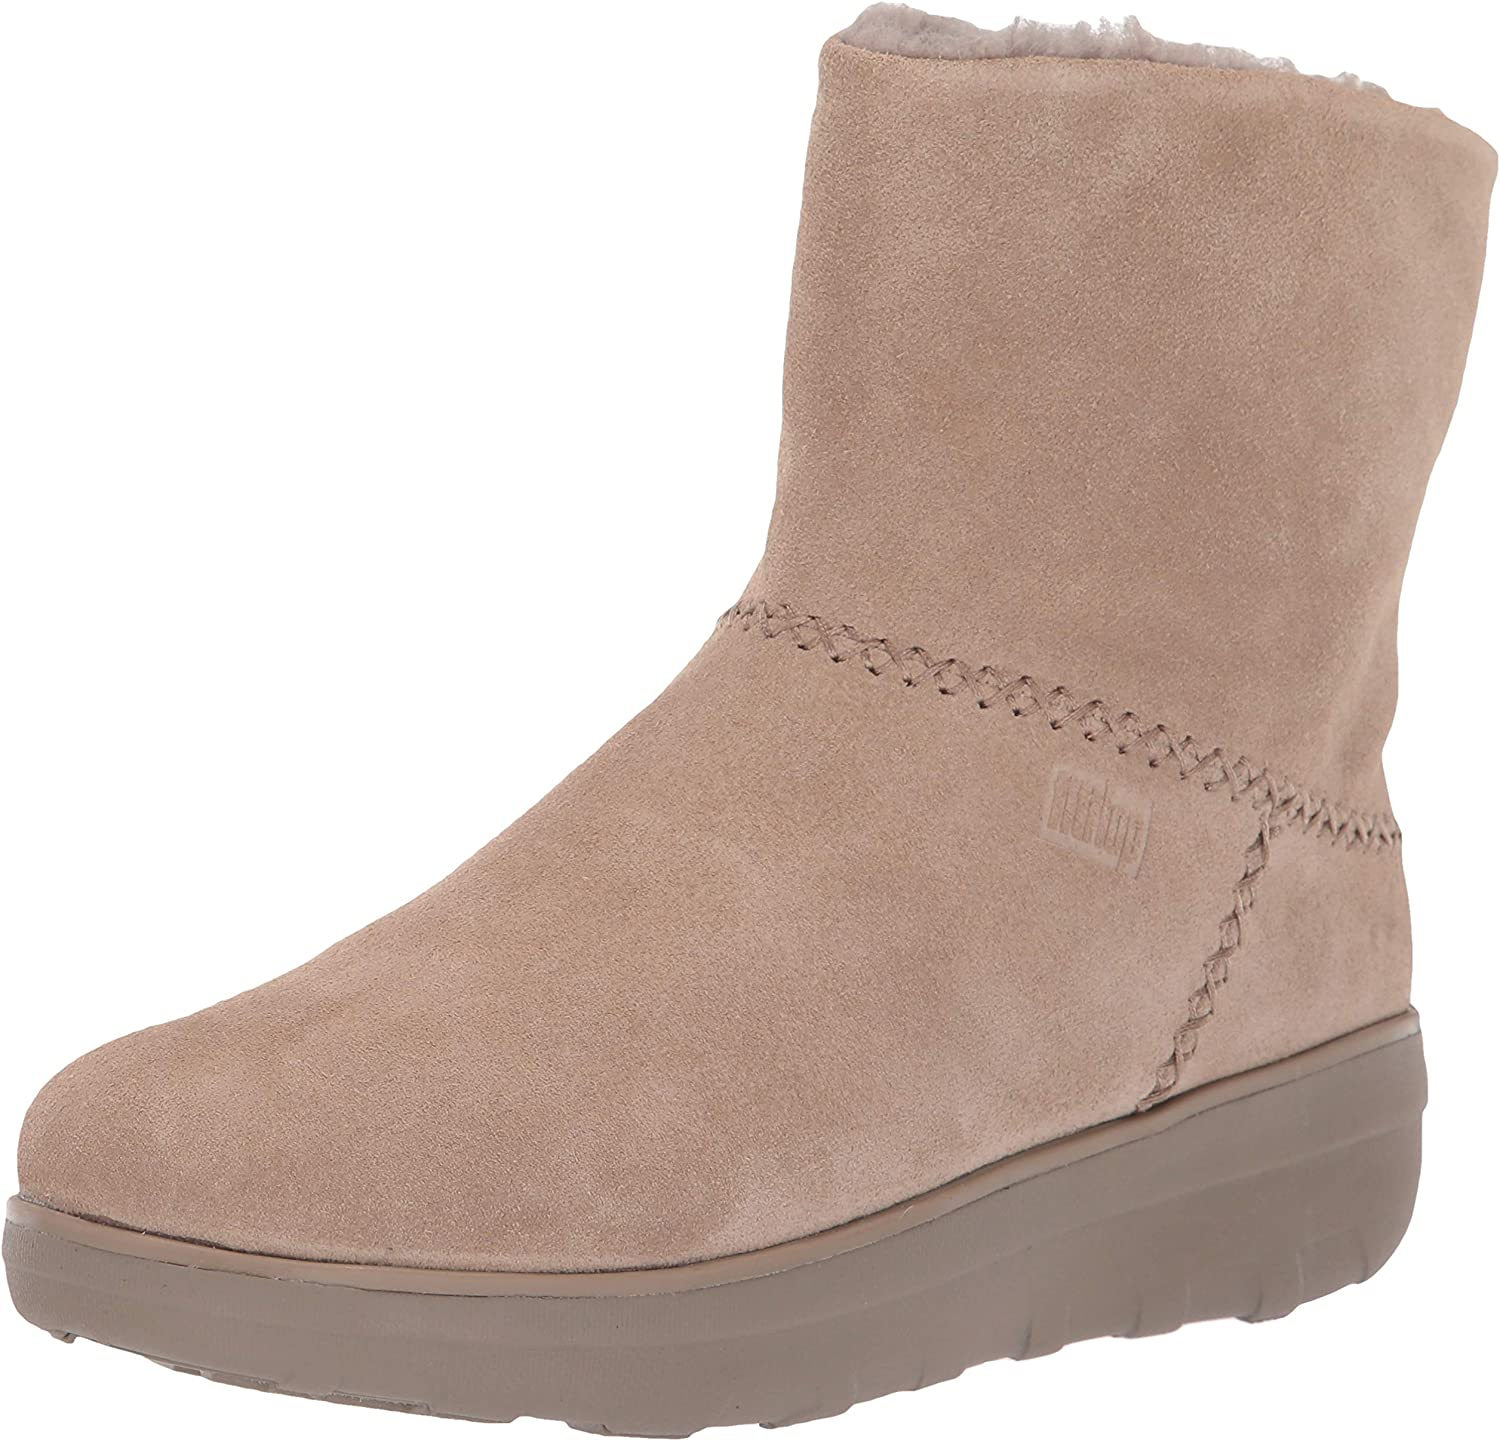 FitFlop Women's Shearling Ankle Boot Complete Free Shipping Albuquerque Mall Bootie